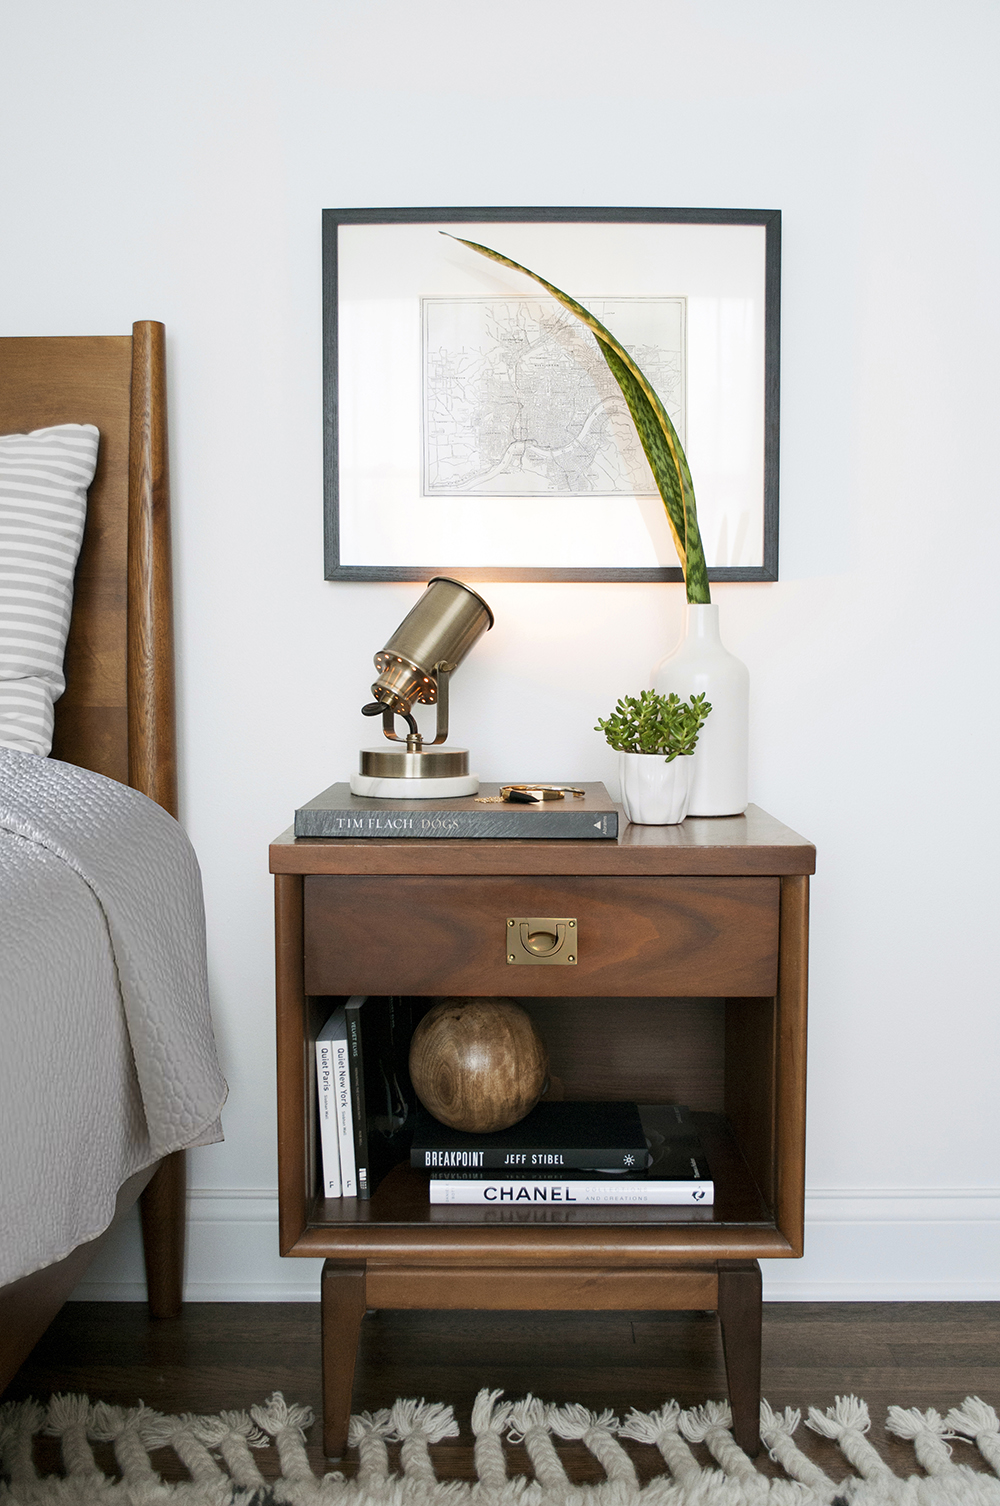 6 Ways to Style Your Nightstand - roomfortuesday.com